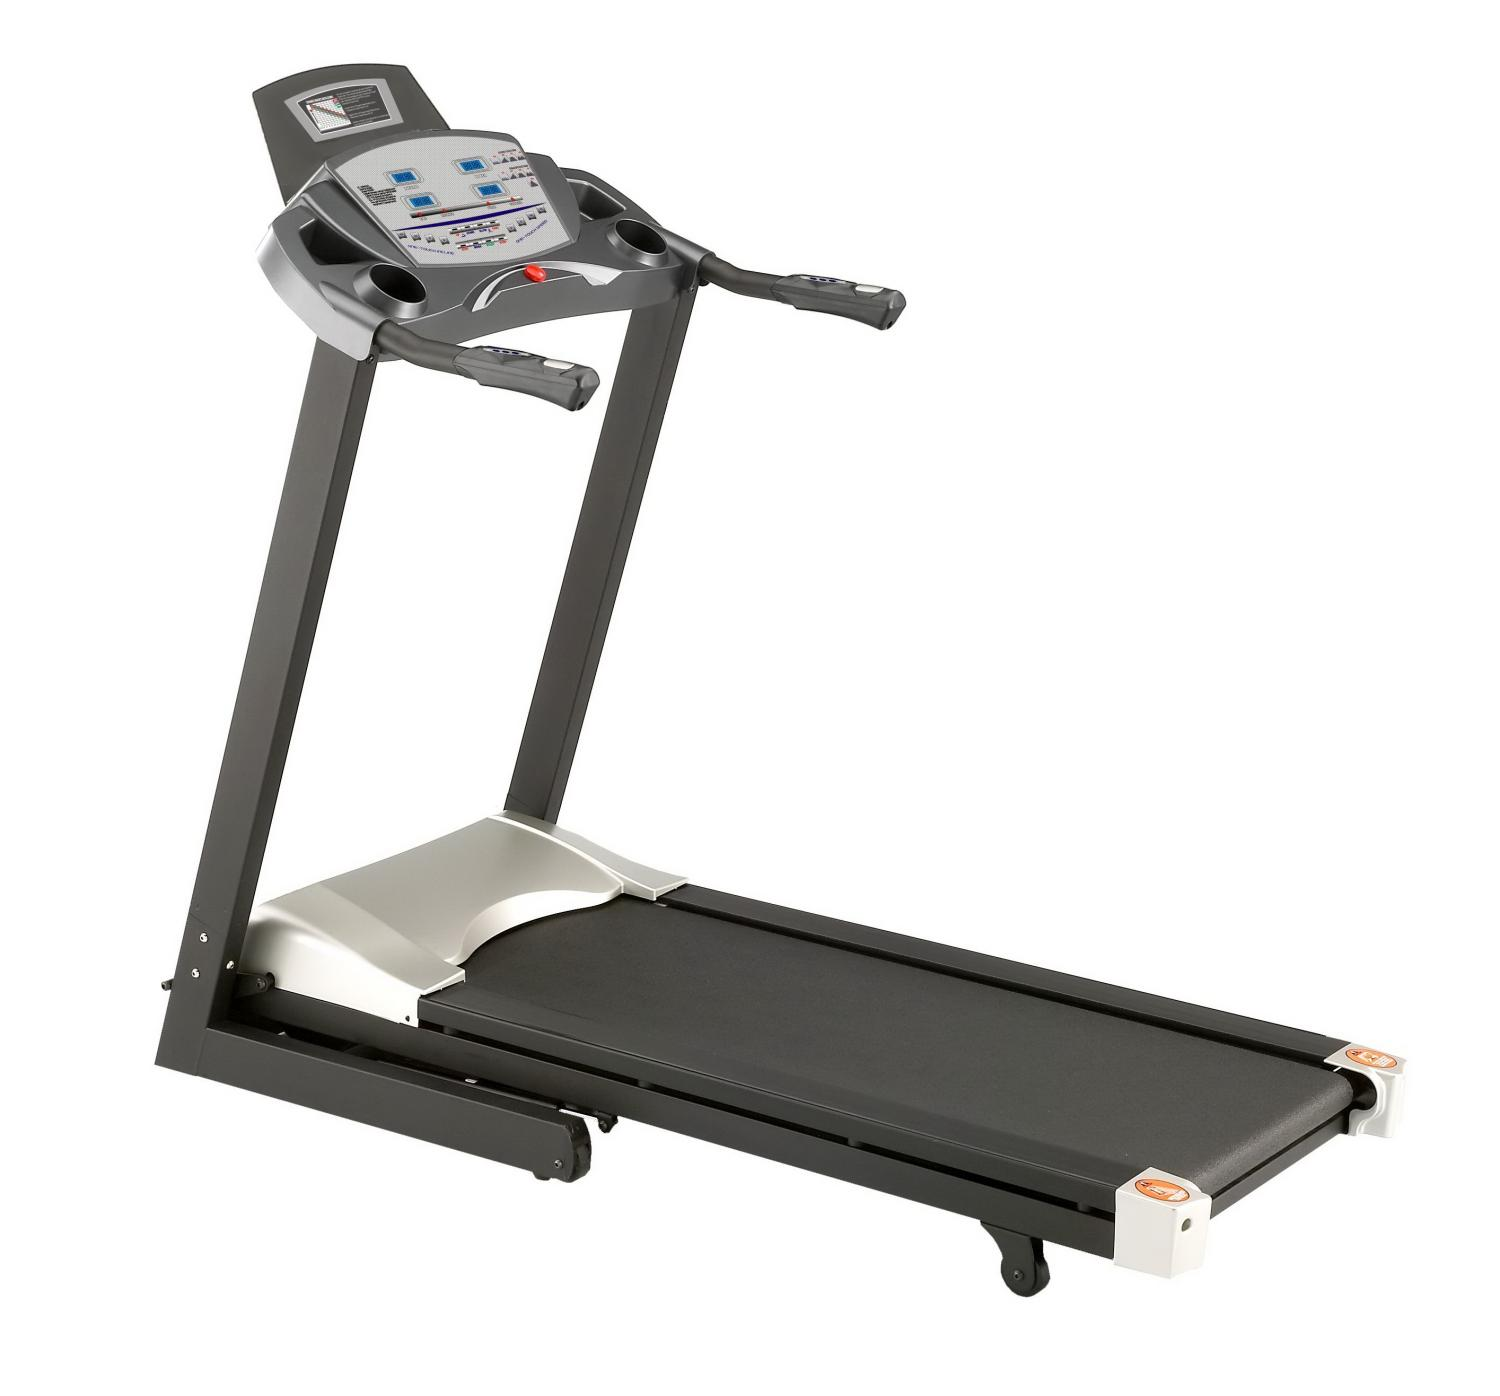 Turbo Fitness 150 treadmills